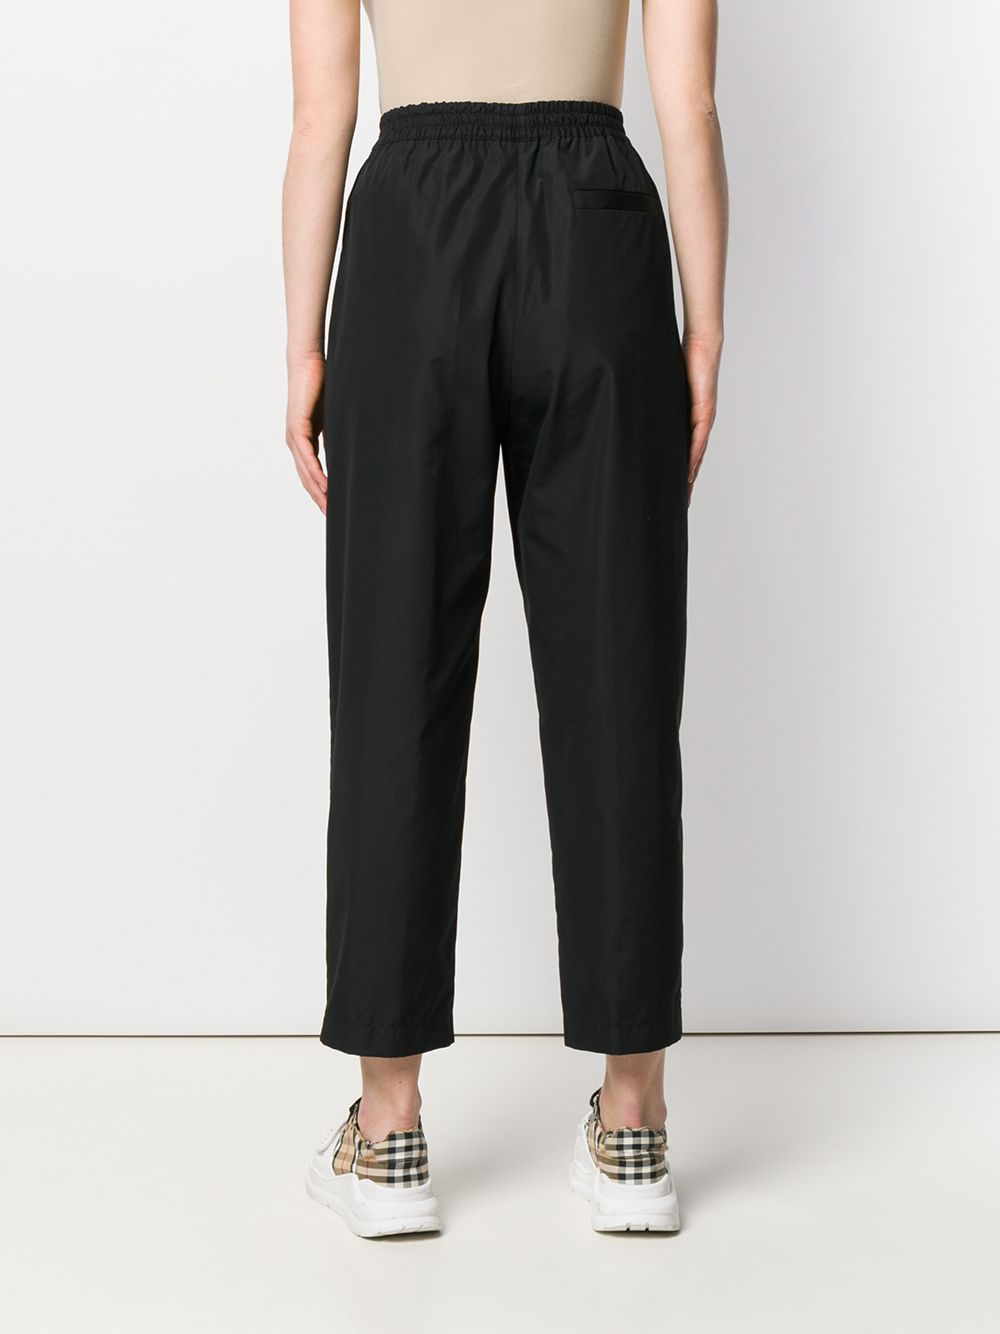 black cropped tapered cotton trousers featuring pleat detailing ASPESI |  | H115-D30785241